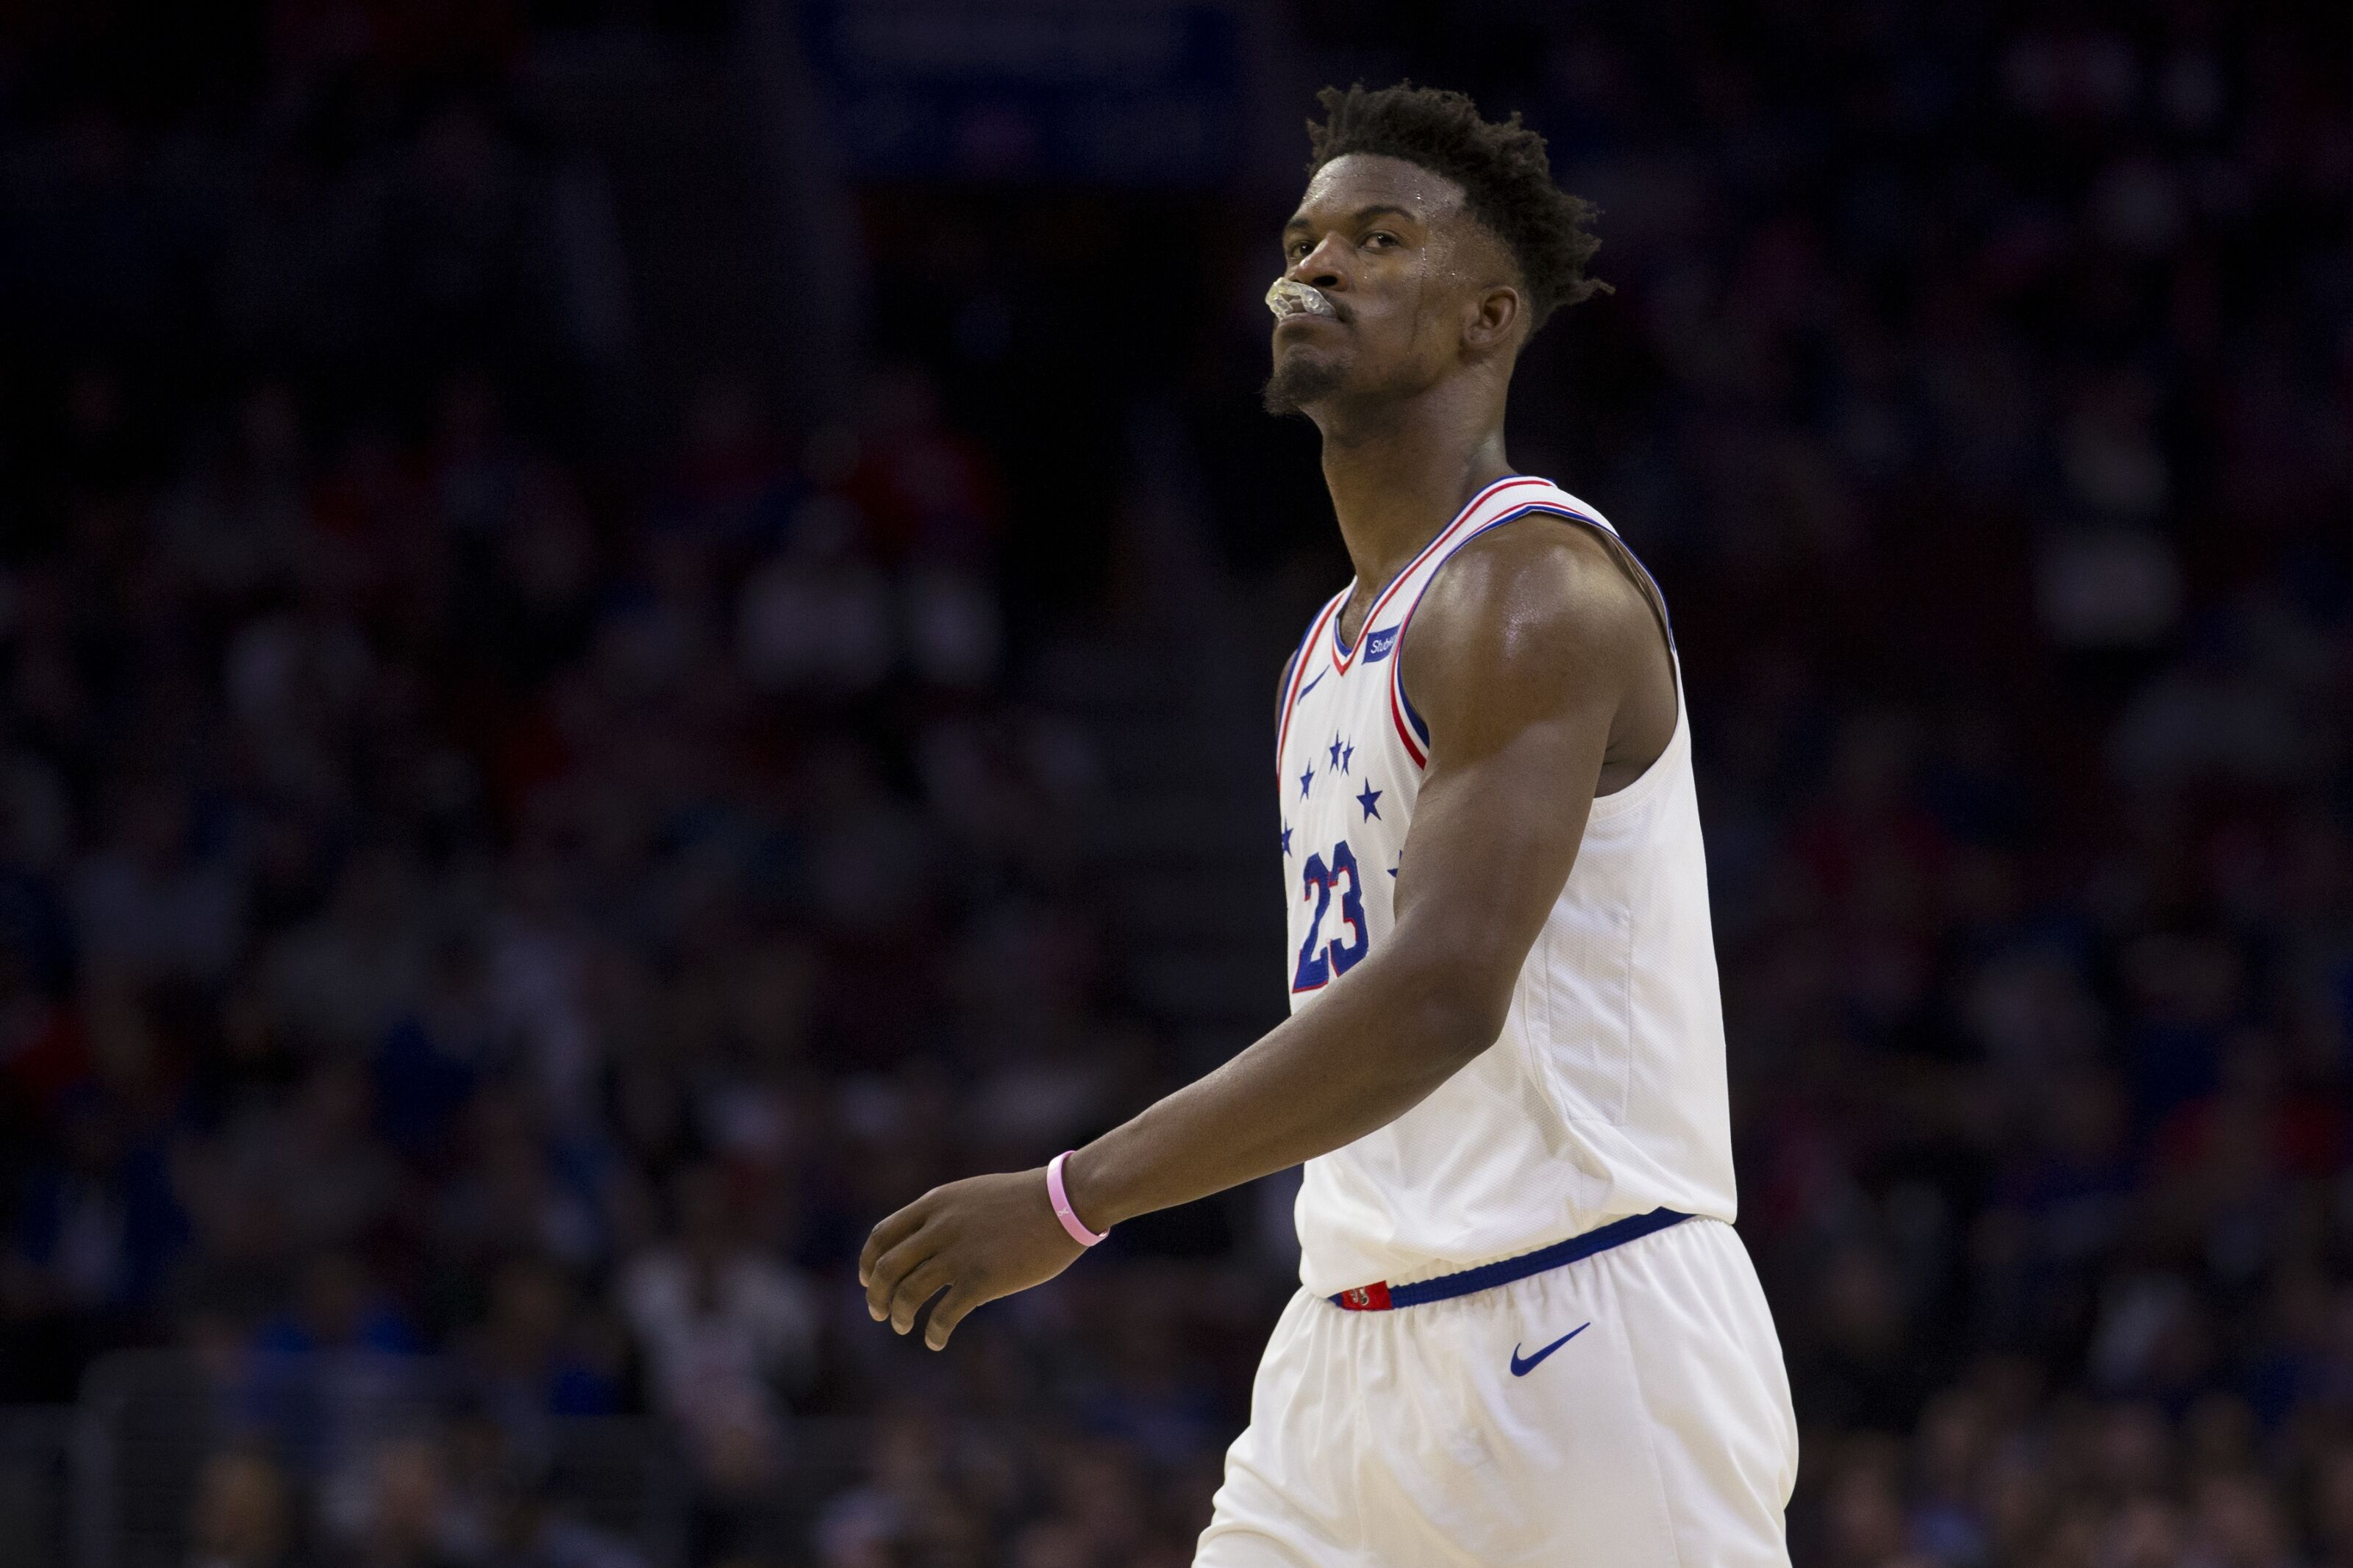 reputable site 4fac7 c5138 Philadelphia 76ers: Jimmy Butler rumors shouldn't excite ...